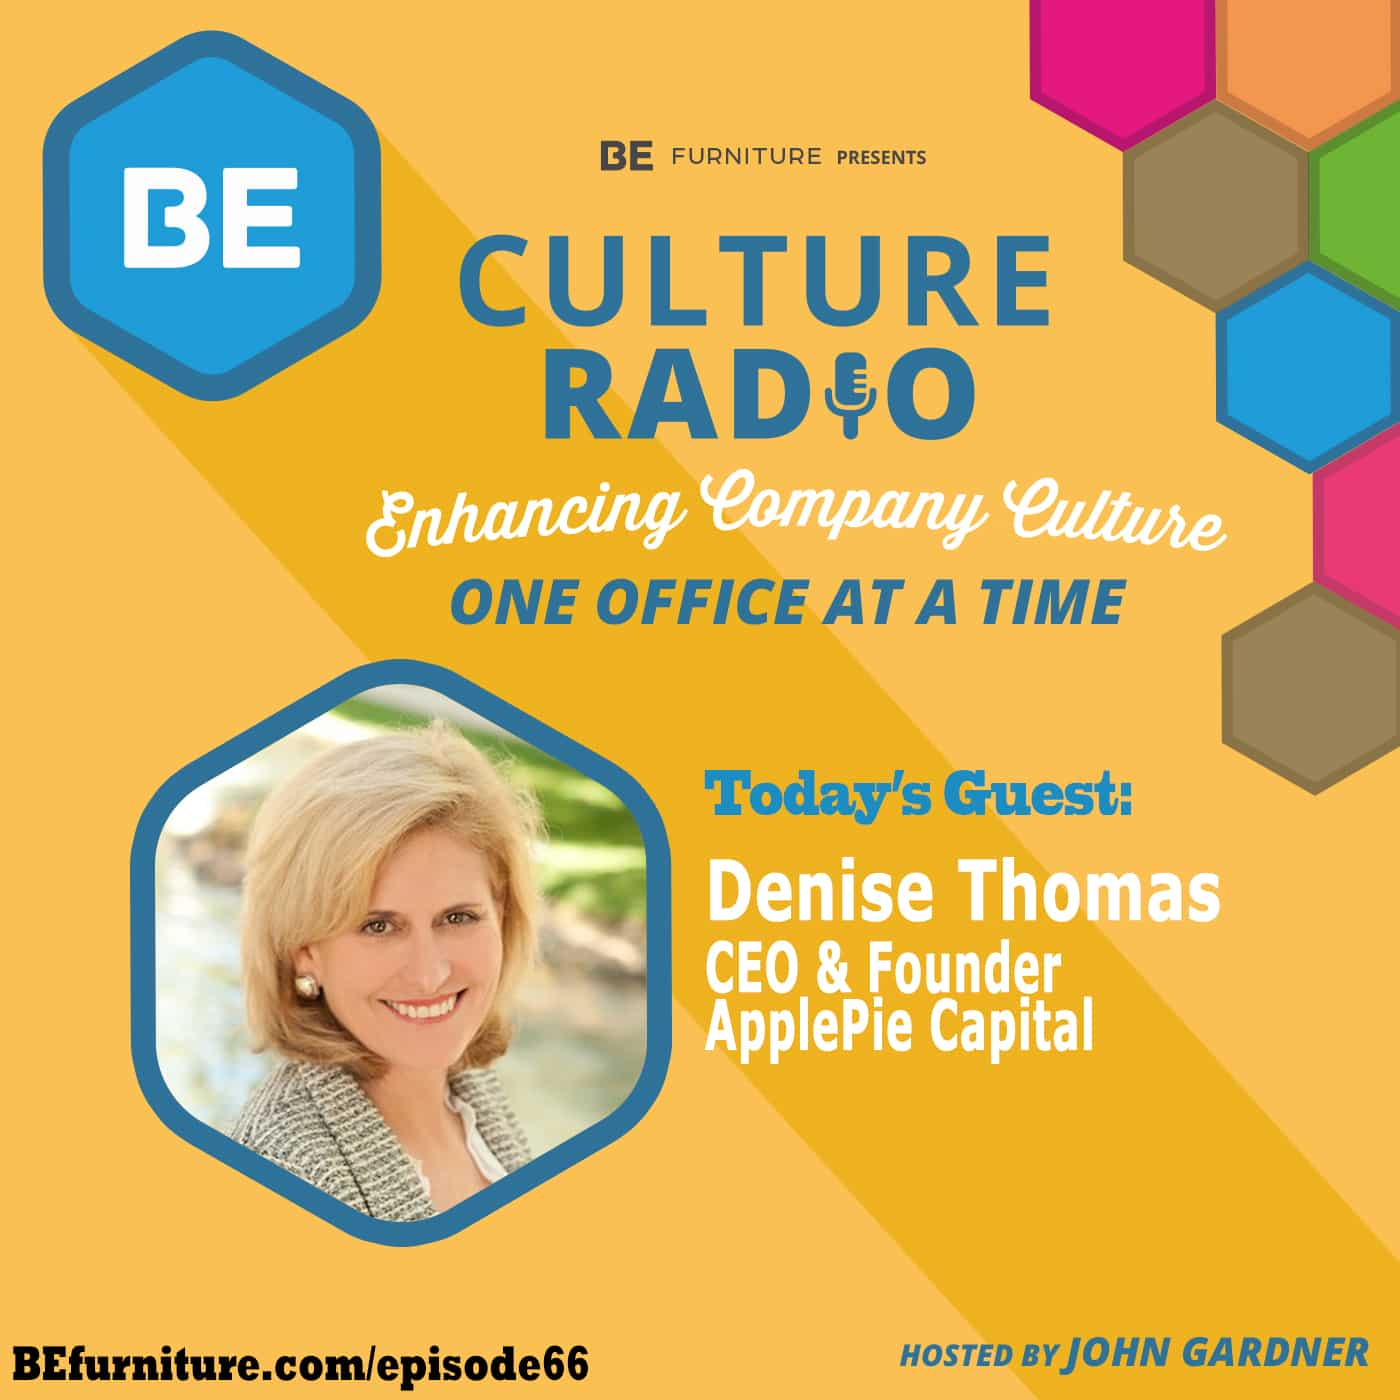 Denise Thomas - CEO, ApplePie Capital